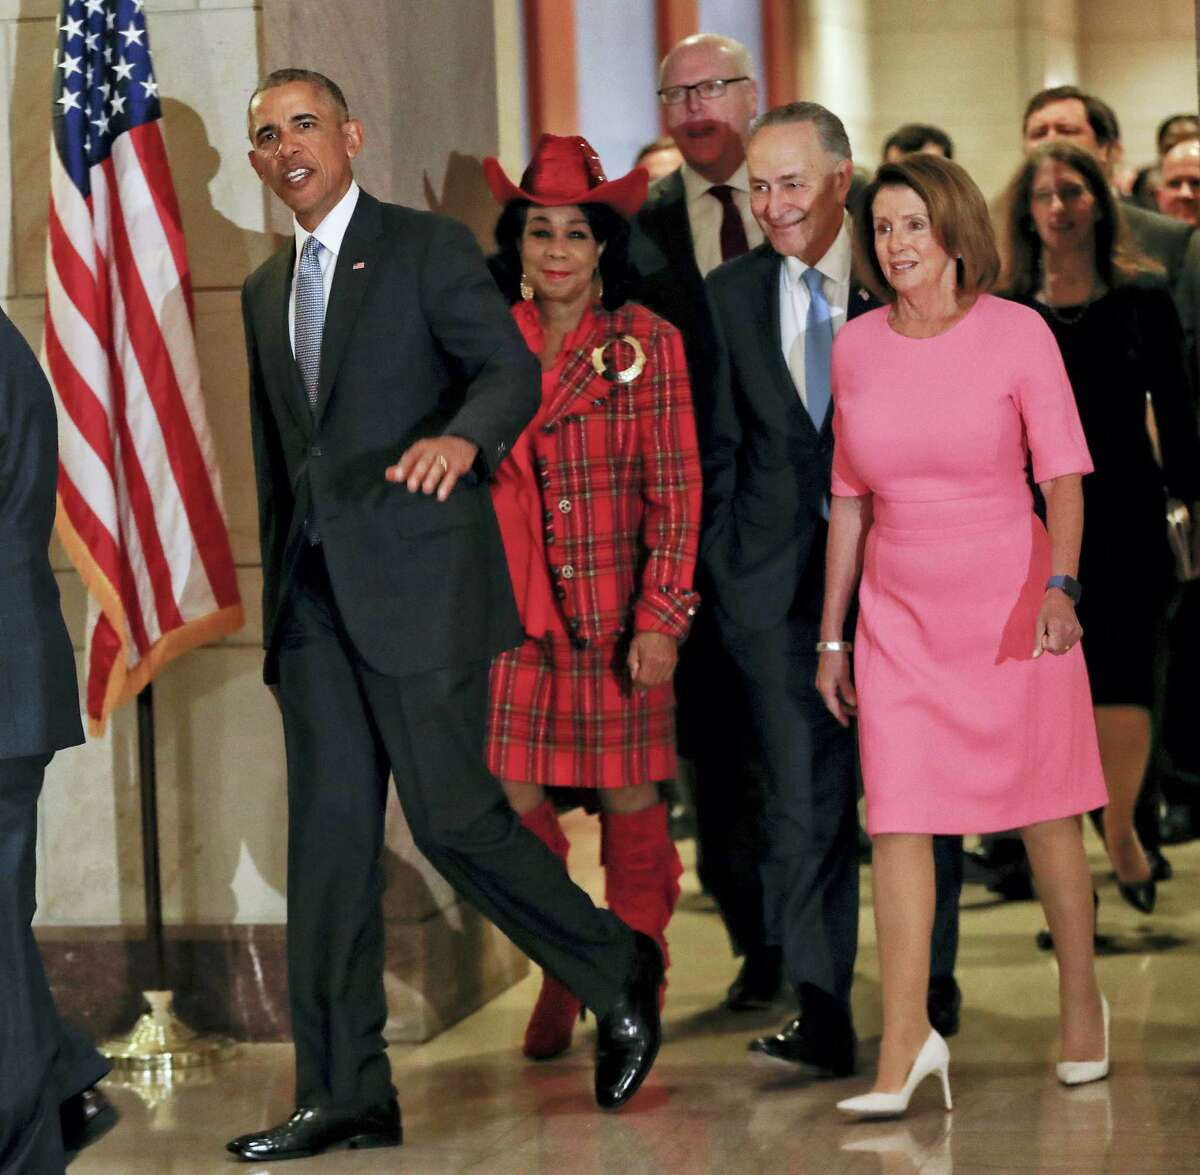 President Barack Obama waves as he arrives on U.S. Capitol Hill in Washington on Jan. 4, 2017 to meet with House and Senate Democratic leaders. Walking with him is Rep. Federica Wilson, D-Fla., Rep. Joseph Crowley, D-NY., Senate Minority Leader Charles Schumer of N.Y., and House Minority Leader Nancy Pelosi of Calif. Obama is at the Capitol to give congressional Democrats advice on how to combat the Republican drive to dismantle his health care overhaul.